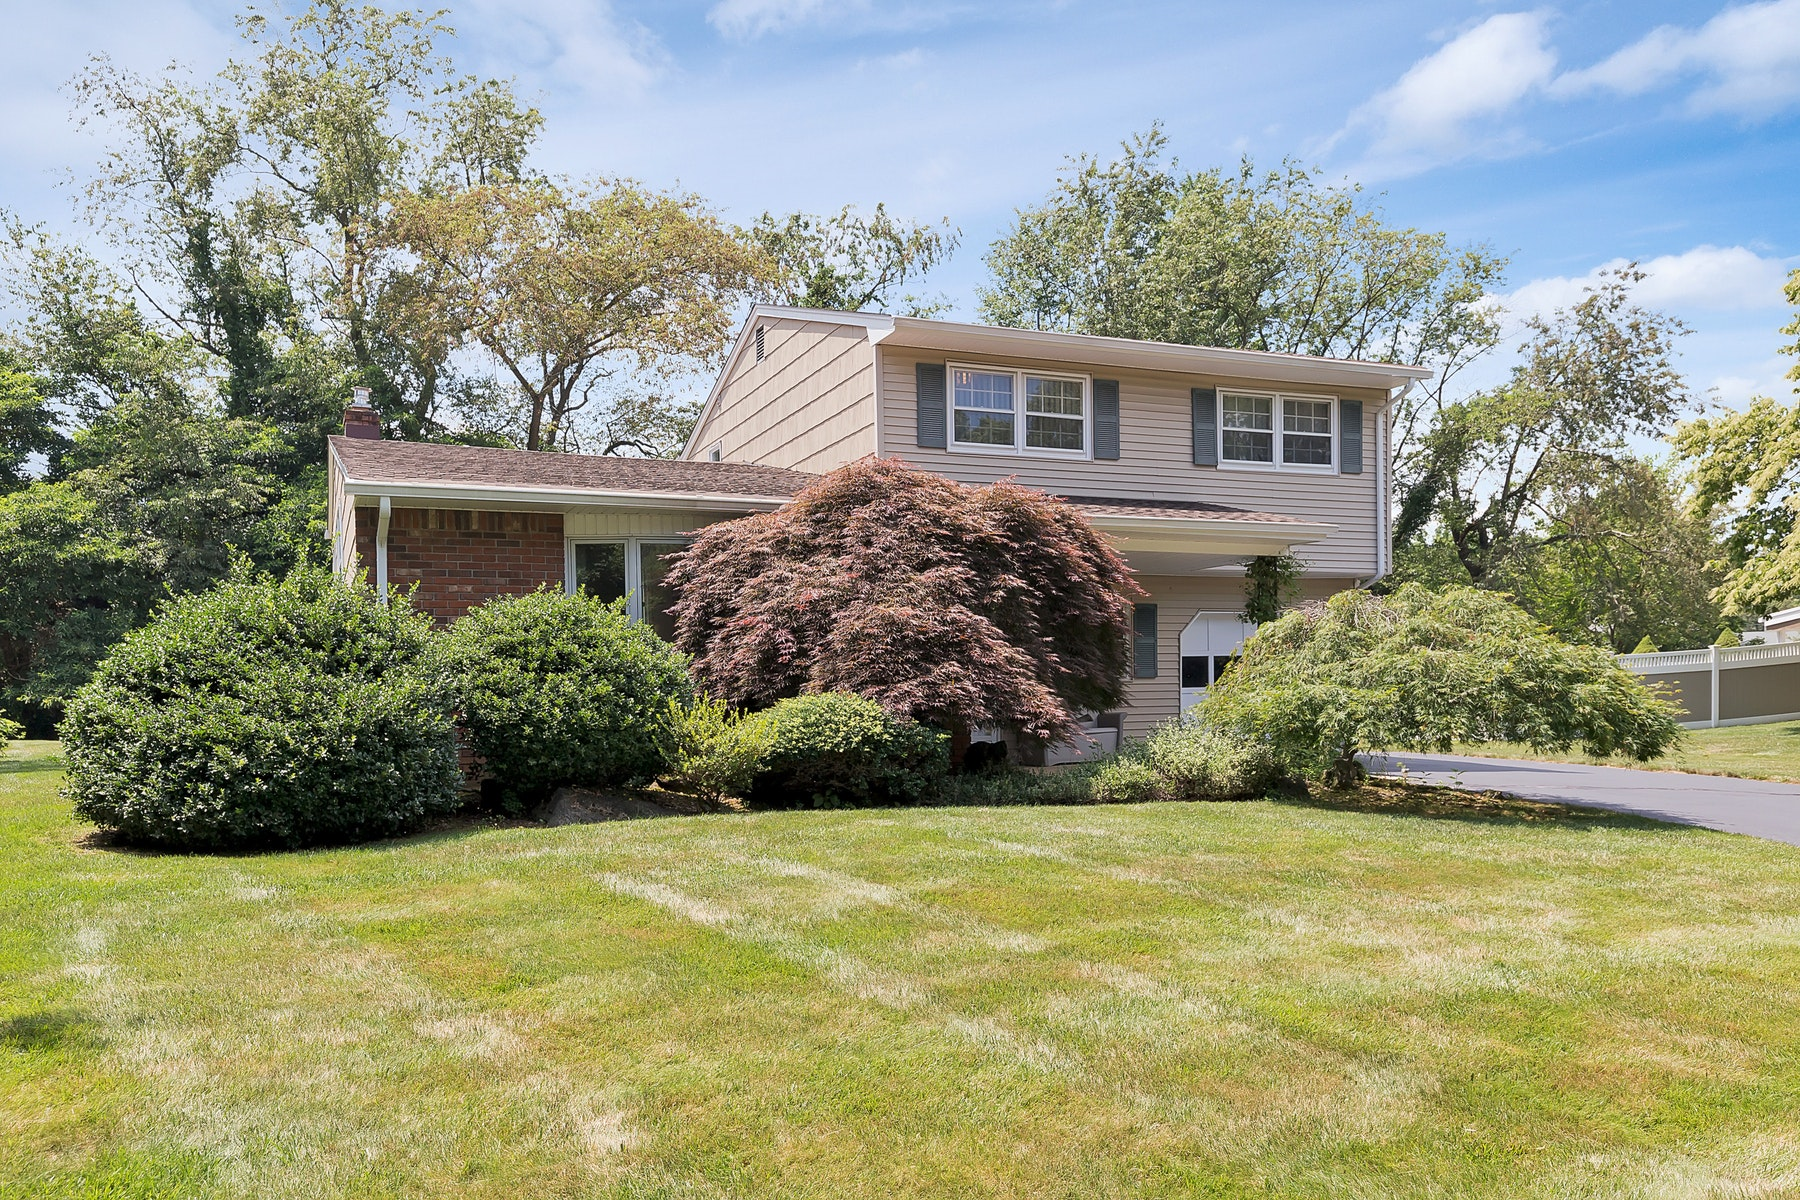 Single Family Homes for Sale at Beautiful Apple Tree Section Split 26 Rath Lane East Brunswick Township, New Jersey 08816 United States